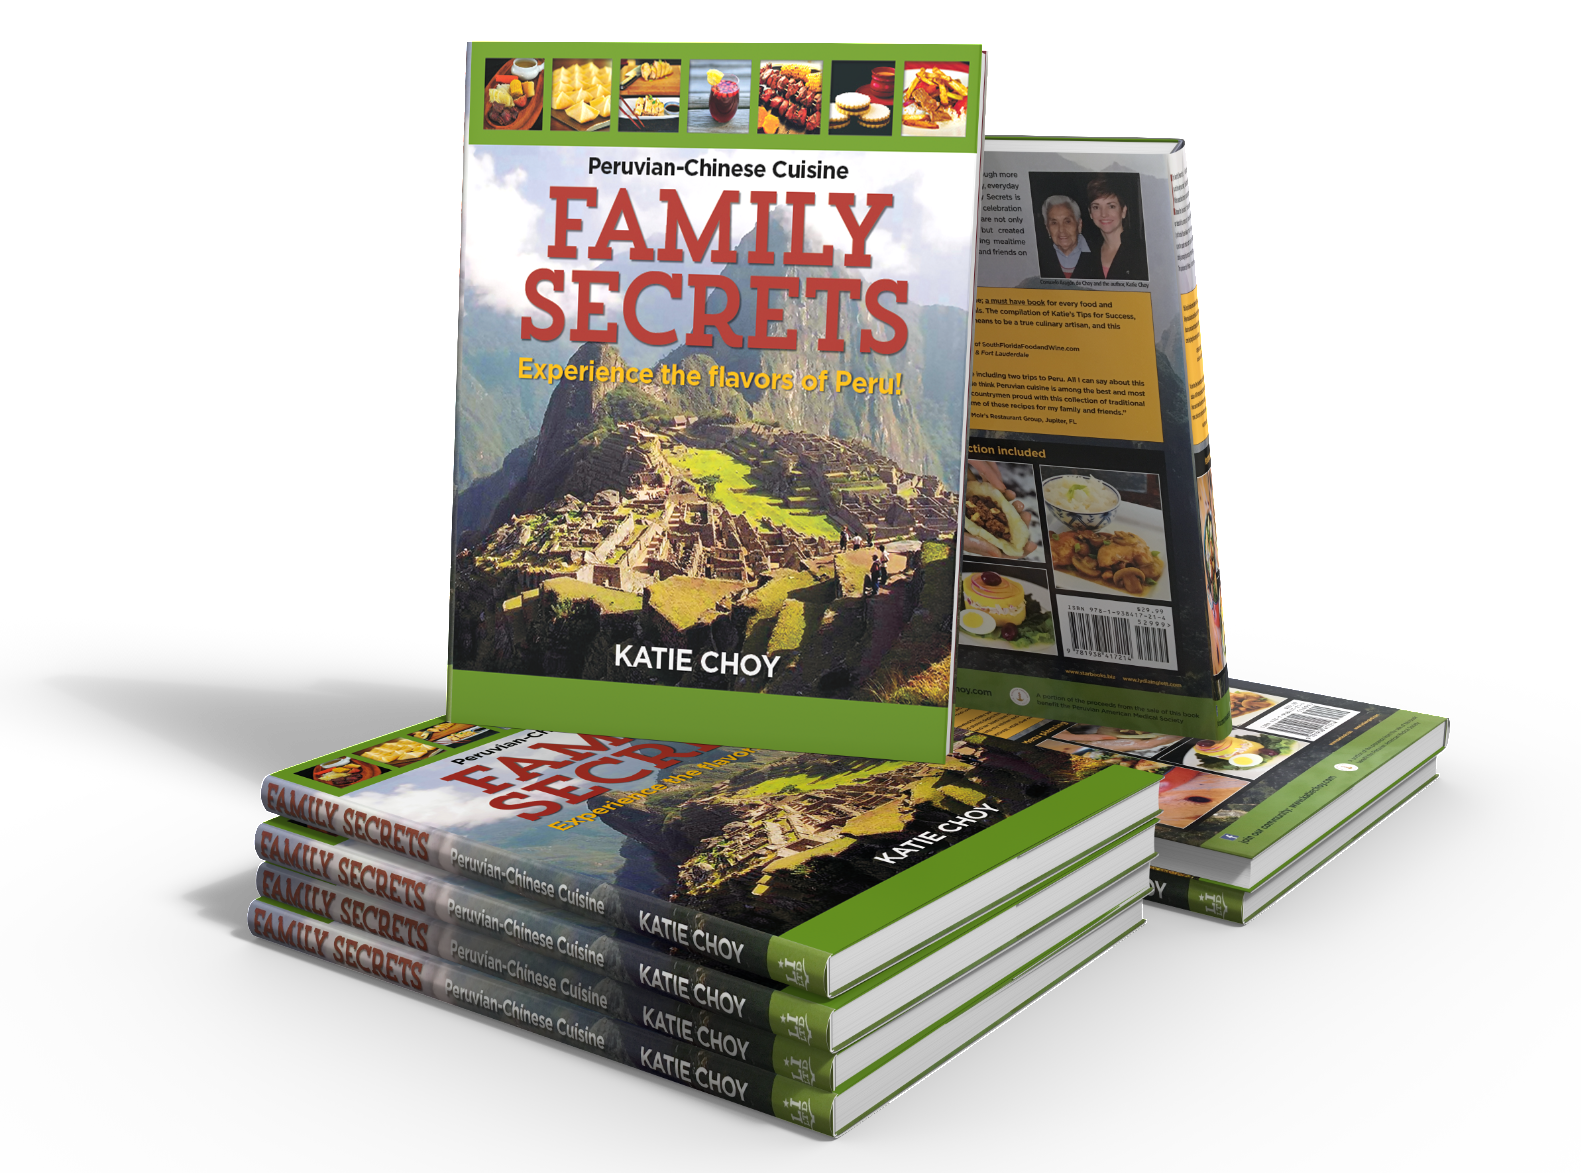 Family Secrets: Peruvian Cookbook by chef Katie Choy published by Starbooks